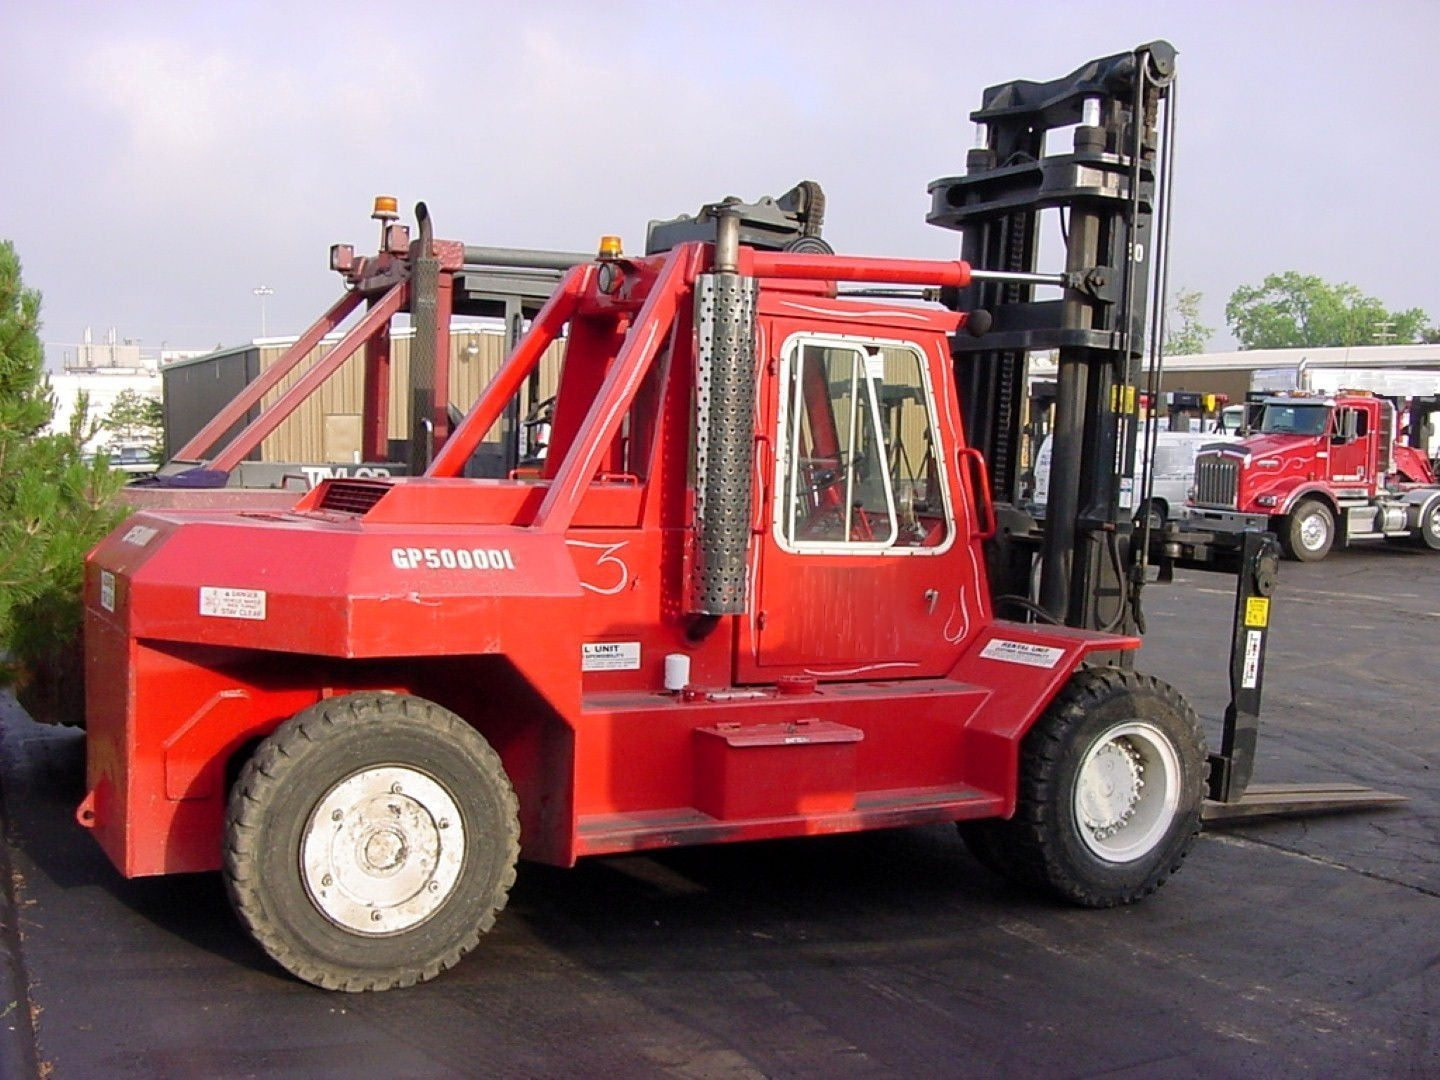 50,000lb. Capacity Bristol Forklift For Sale